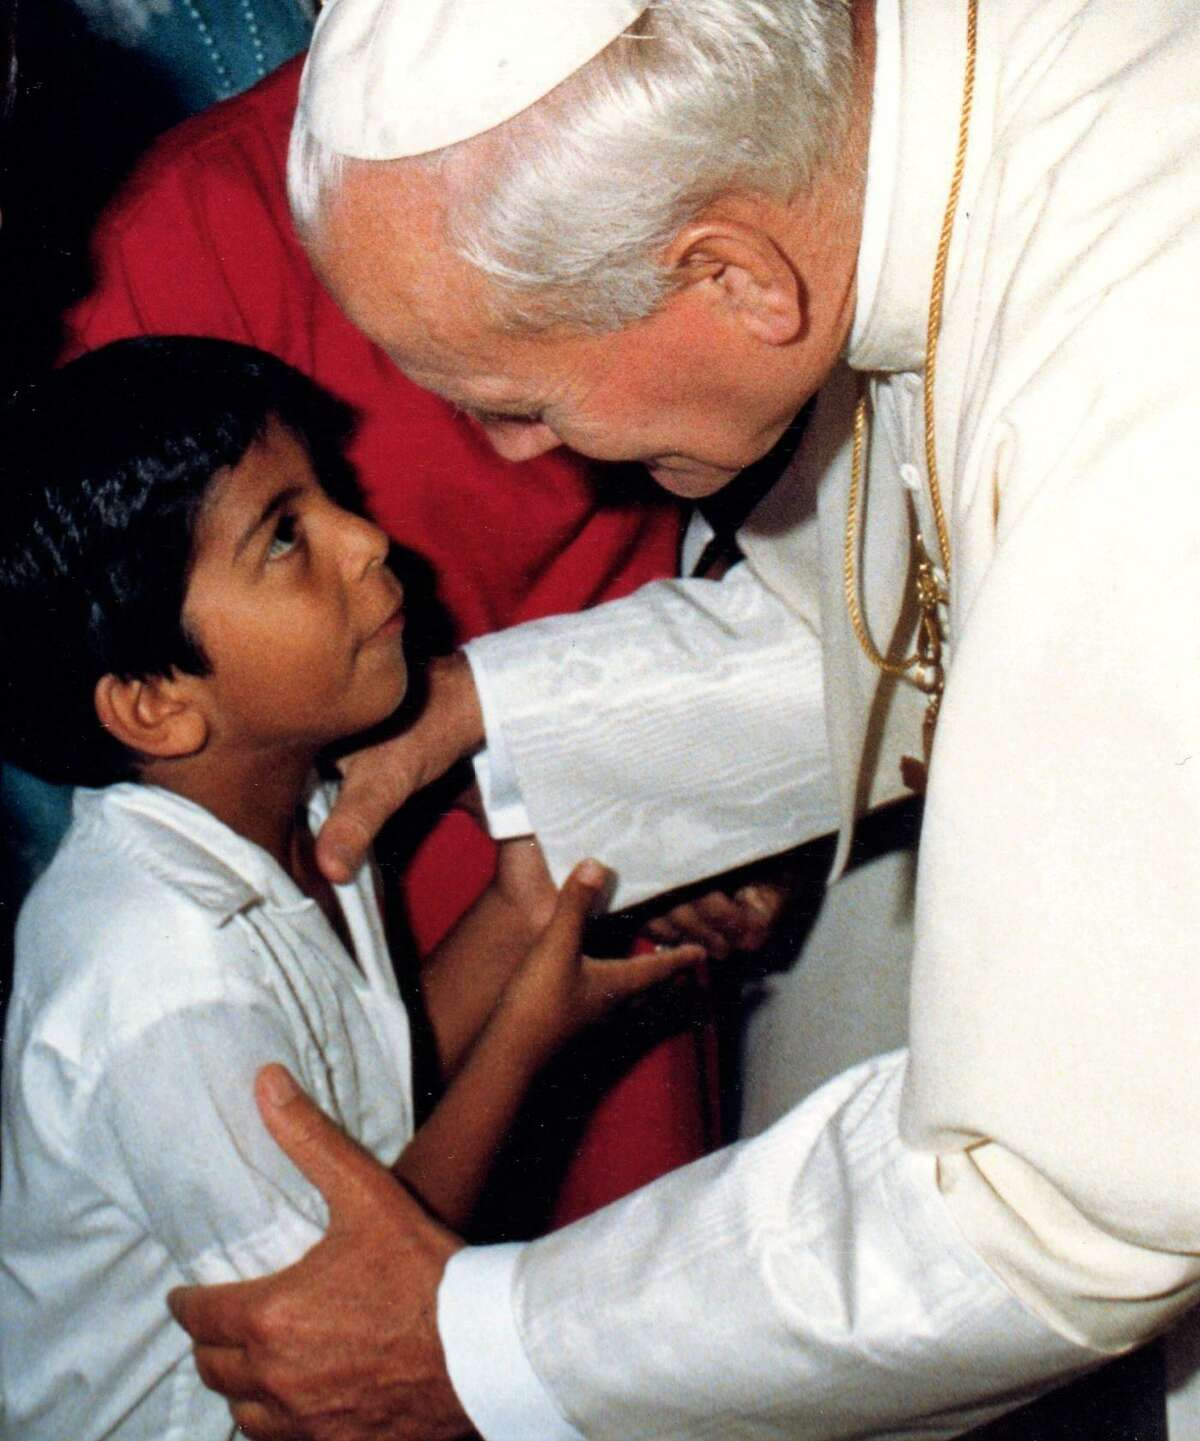 Pope John Paul II sharing a moment with 7-year-old Adam Aguirre in 1987 in San Antonio.